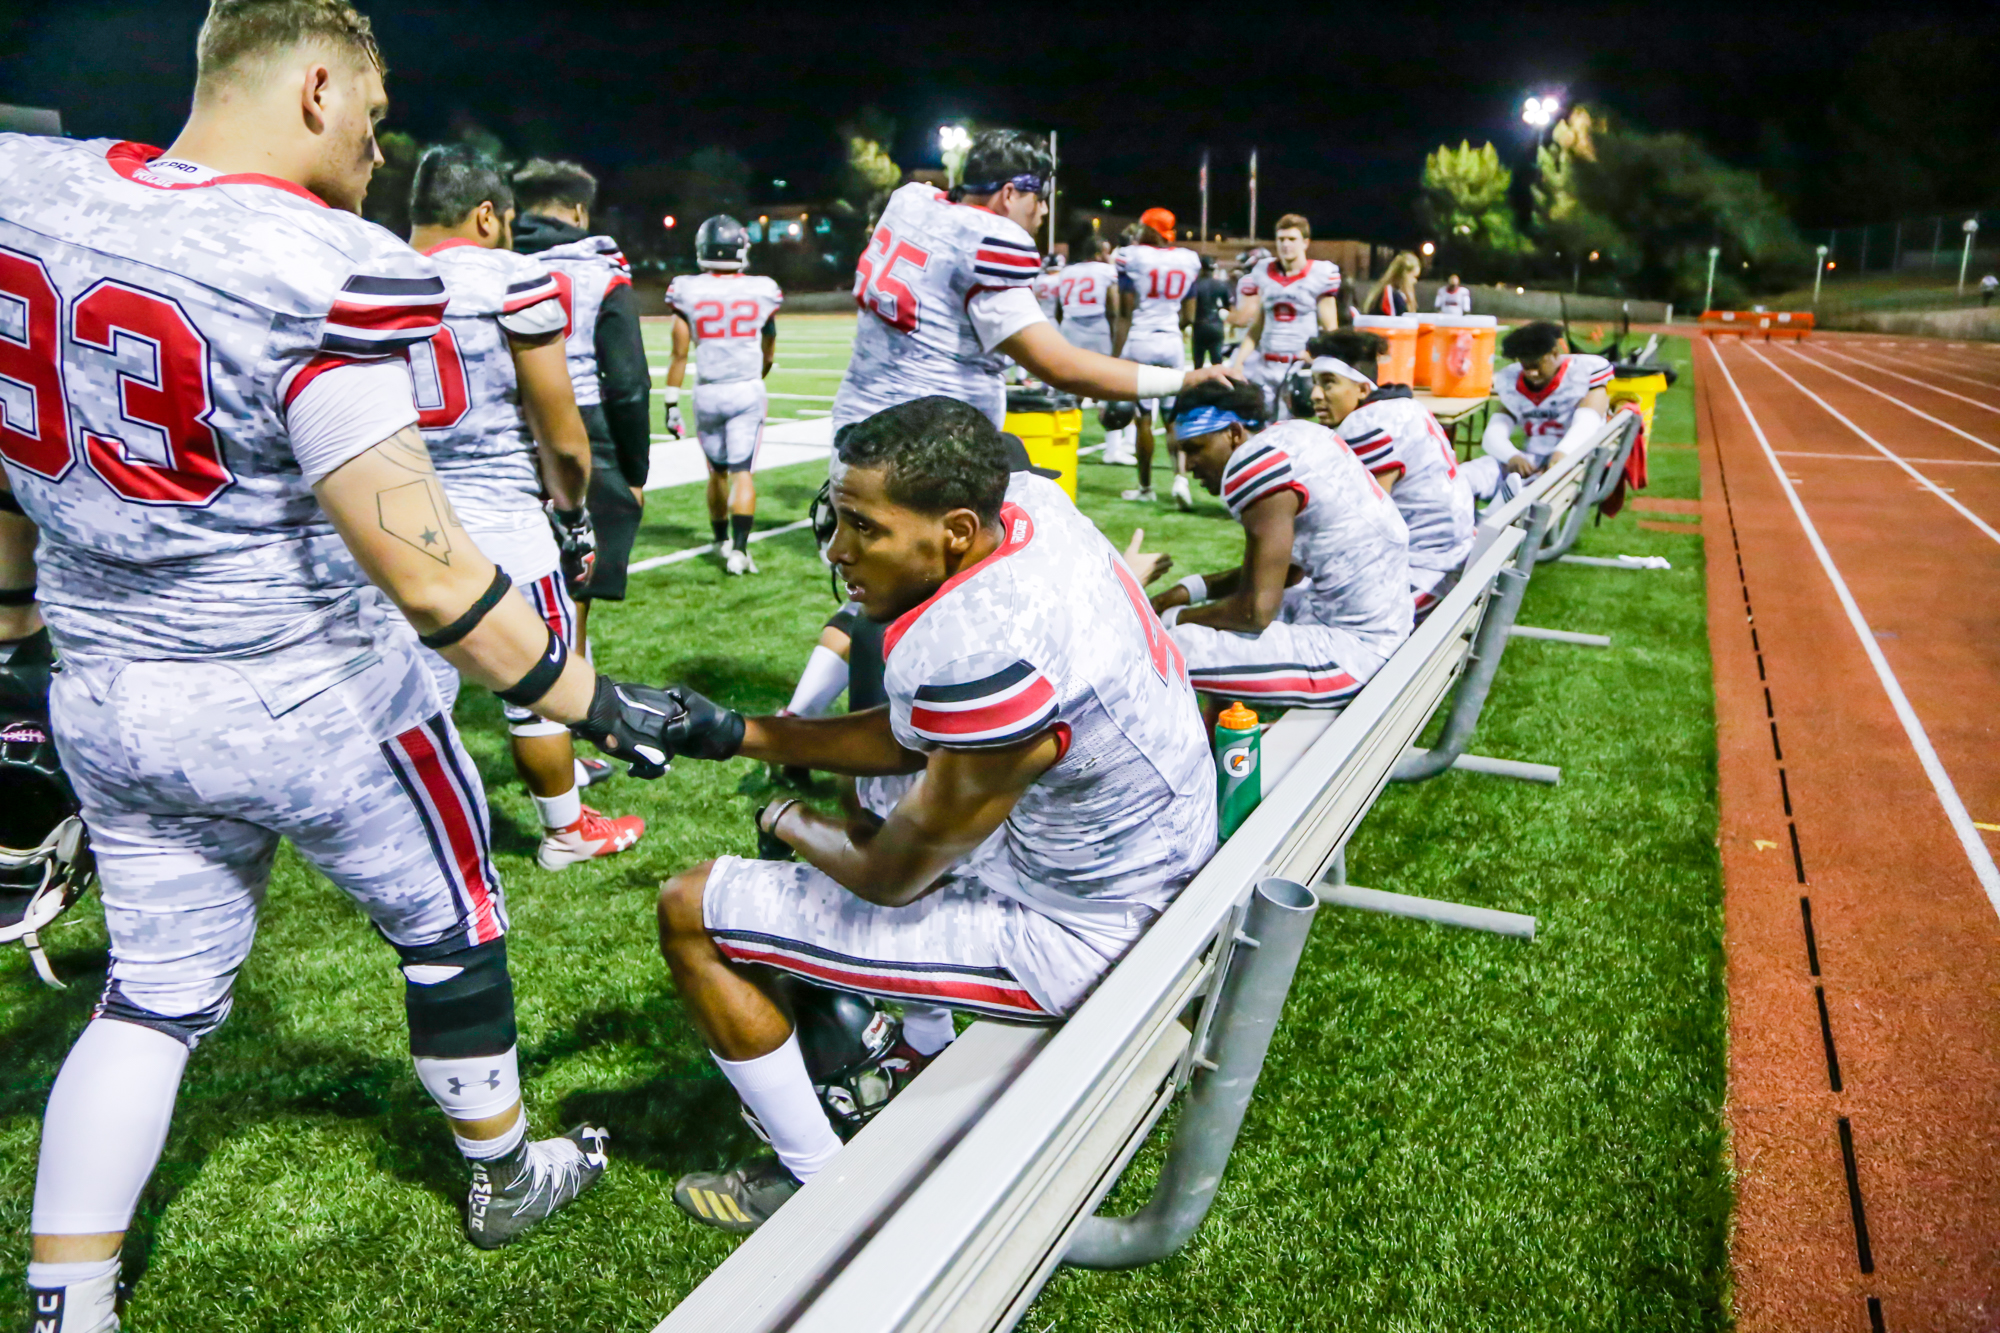 CCCAA extends recruiting ban for all colleges